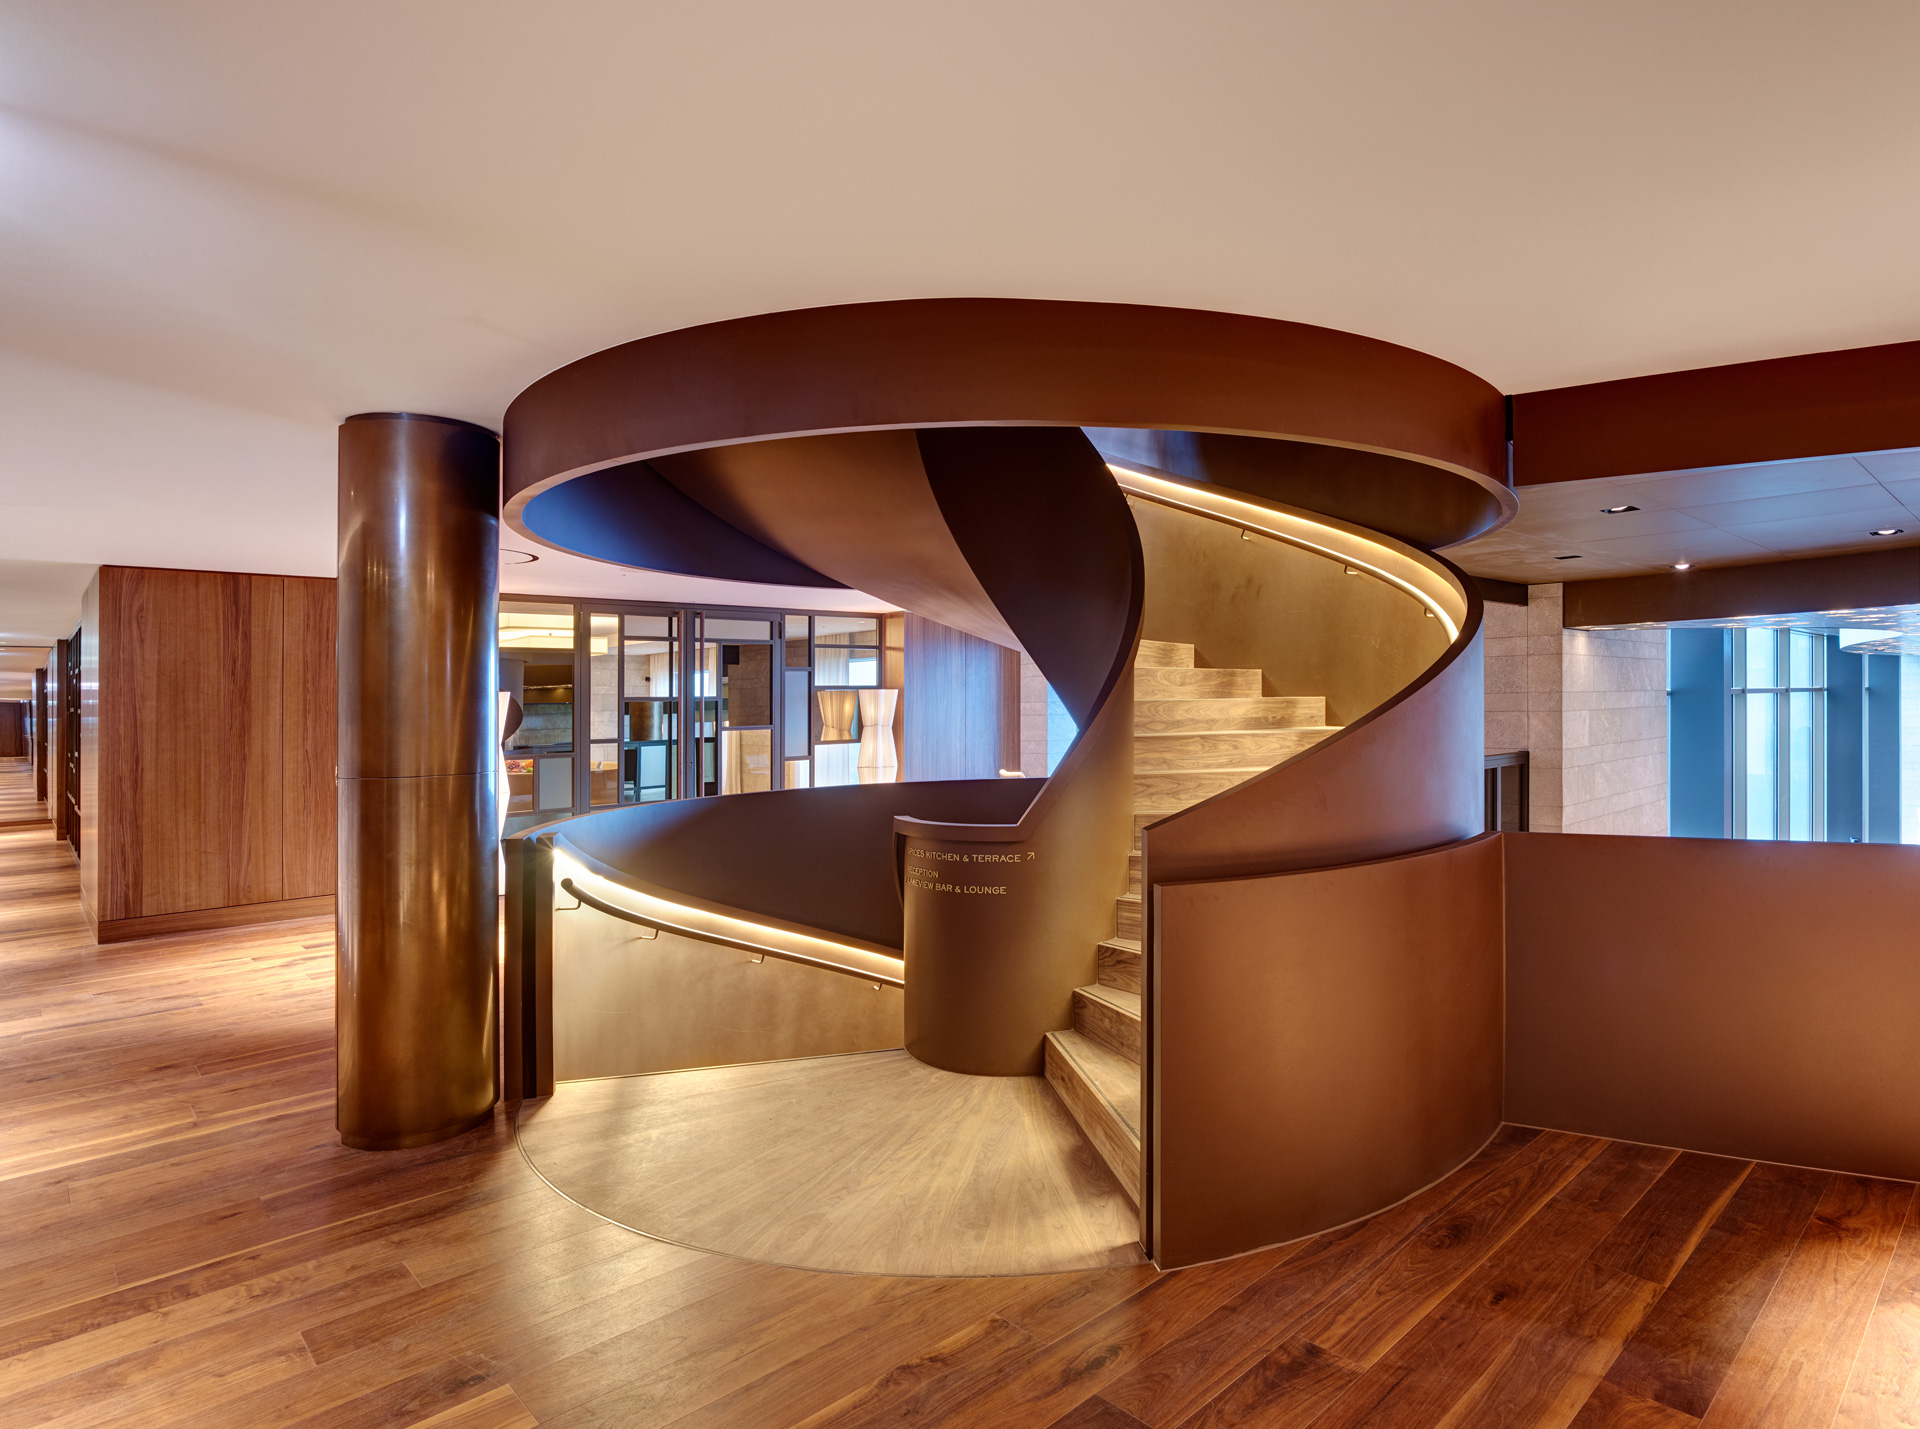 Circular staircase inside the Hotel Bürgenstock. Nordic Décor coated pillar is next to the staircase. The Staircase's outer parts are made from Nordic Décor and their surface is smooth matte-like. The Staircase steps and the floor have a wood finish.